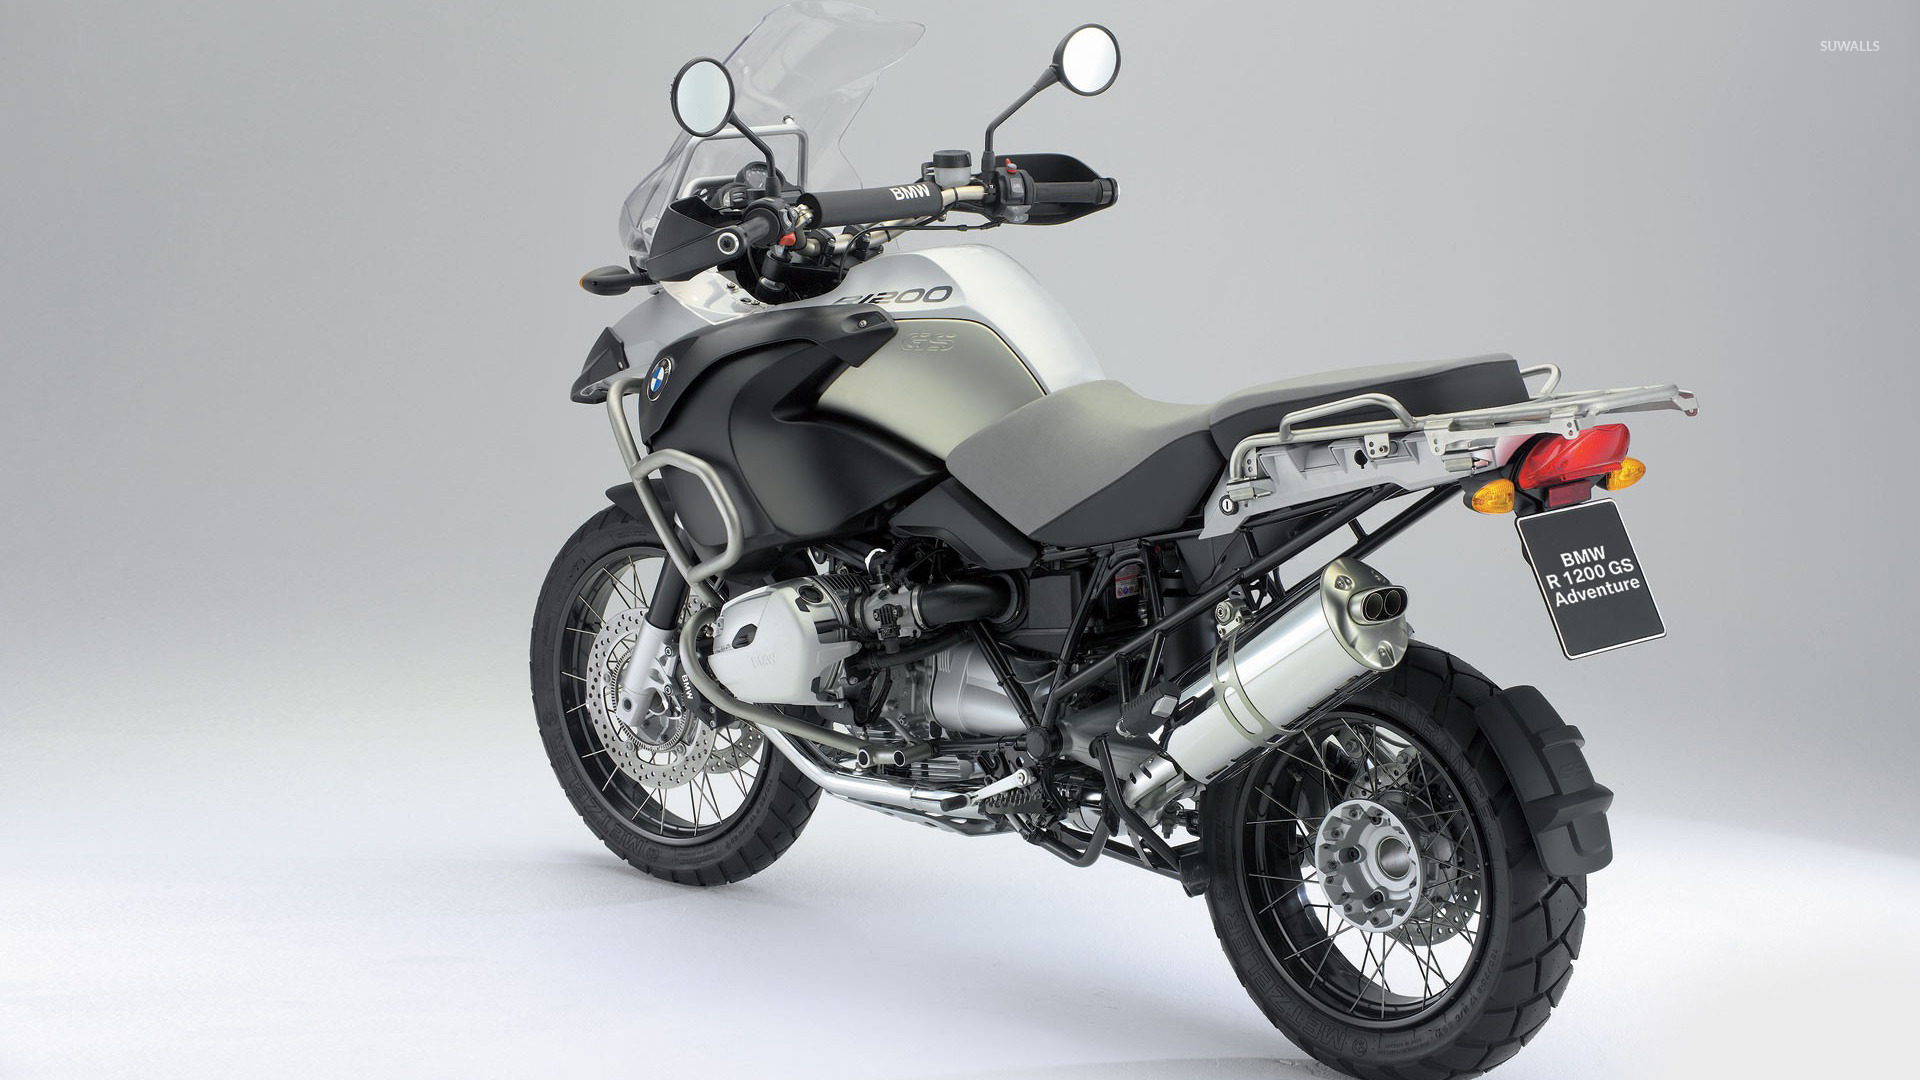 BMW R1200GS [2] Wallpaper